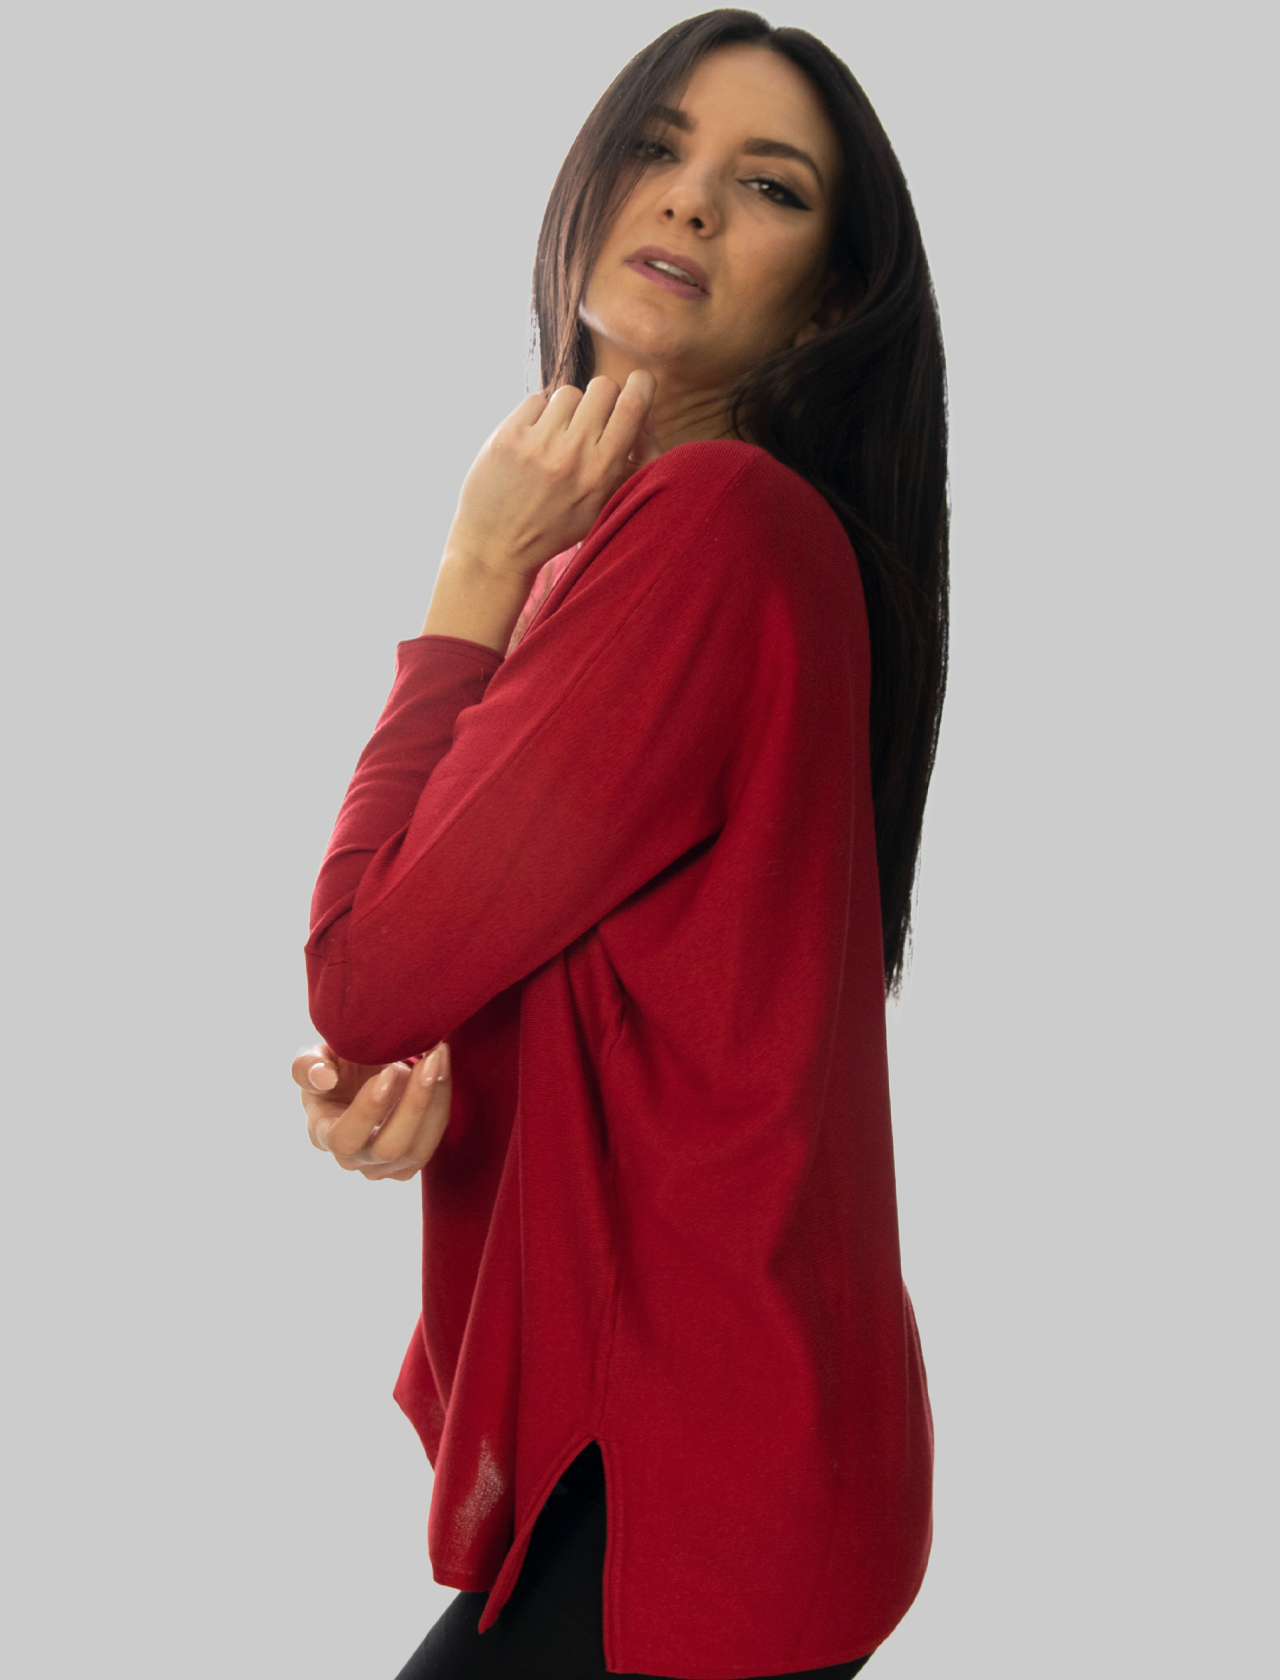 Women's Clothing Smooth Spring Sweater in Red Cotton with Round Neck and Long Sleeves Maliparmi | Knitwear | JQ48667612830032